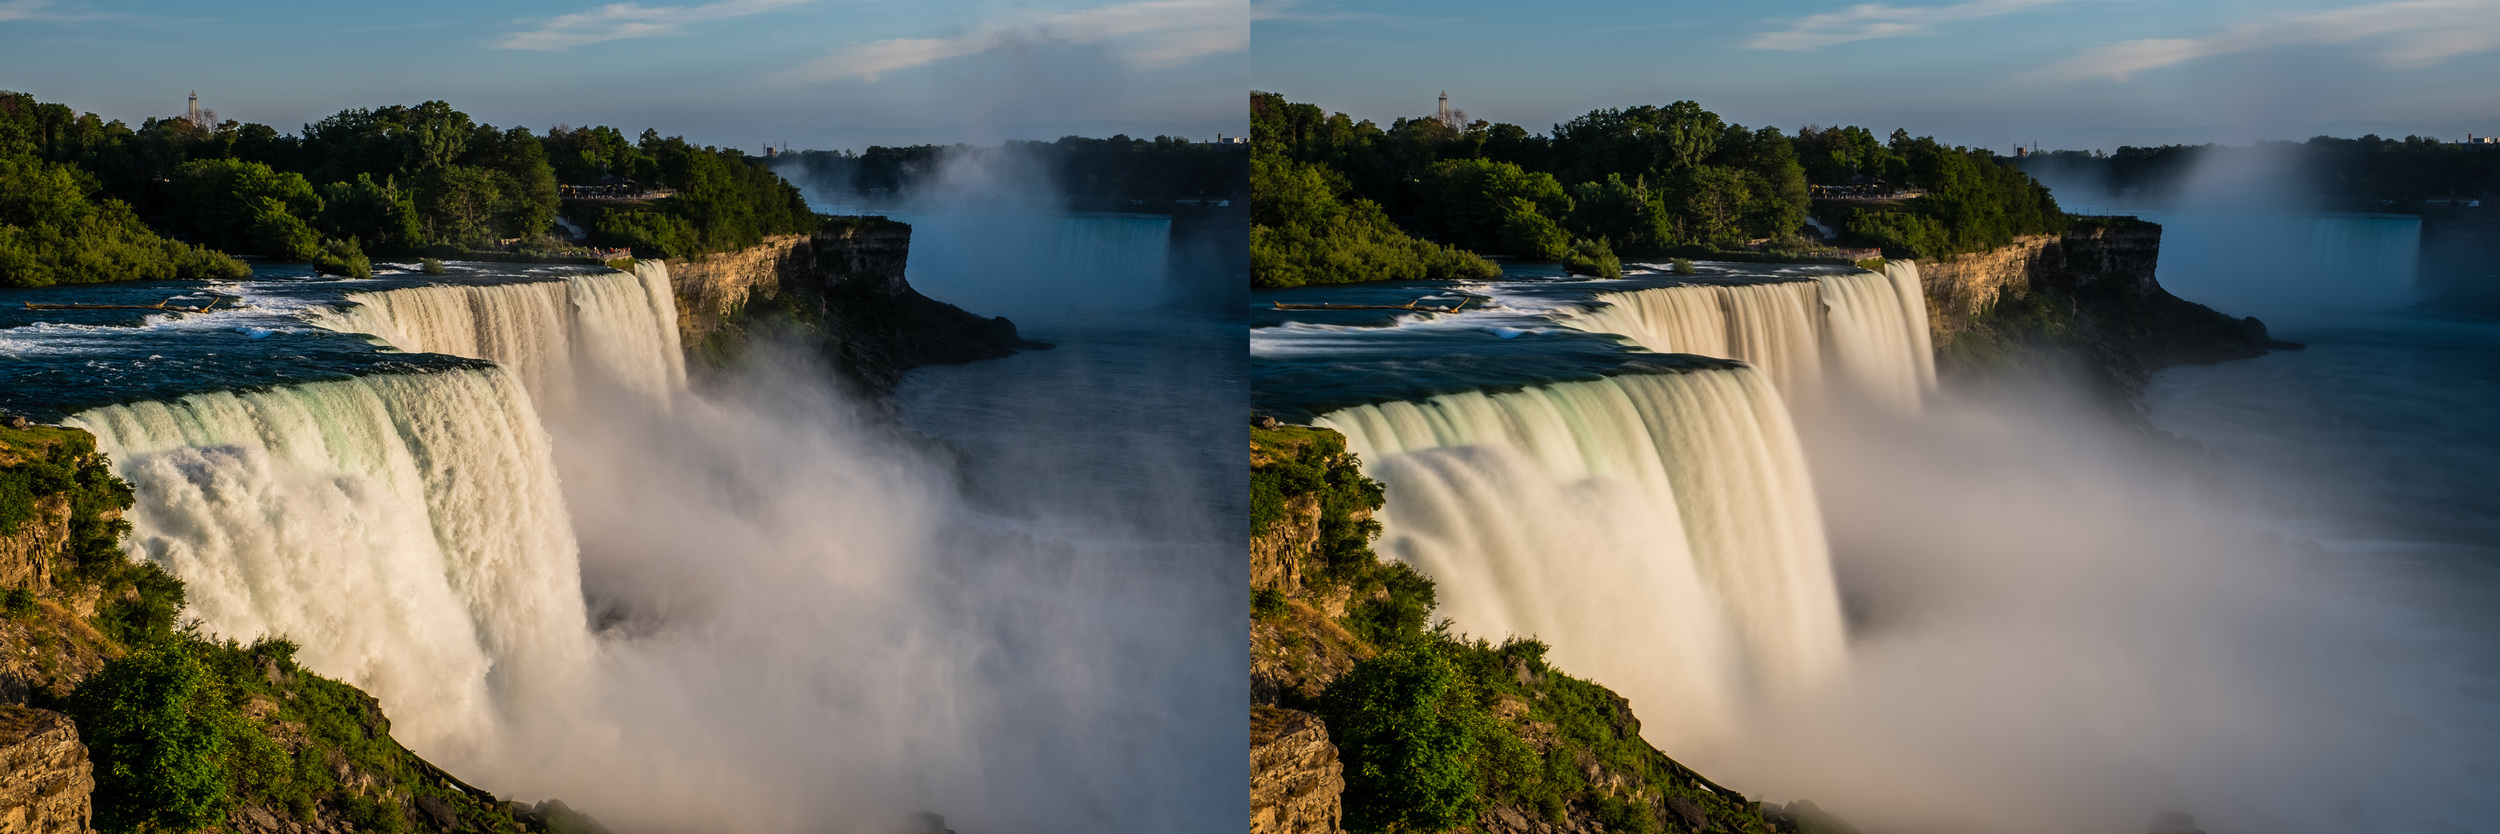 BEFORE AND AFTER - With this capture, I only blended 25 of 100 images that I shot of this technique in mind, this gave me textures in the falls still. So you can have the full effect or as little as you like and fine tune it to what you require!